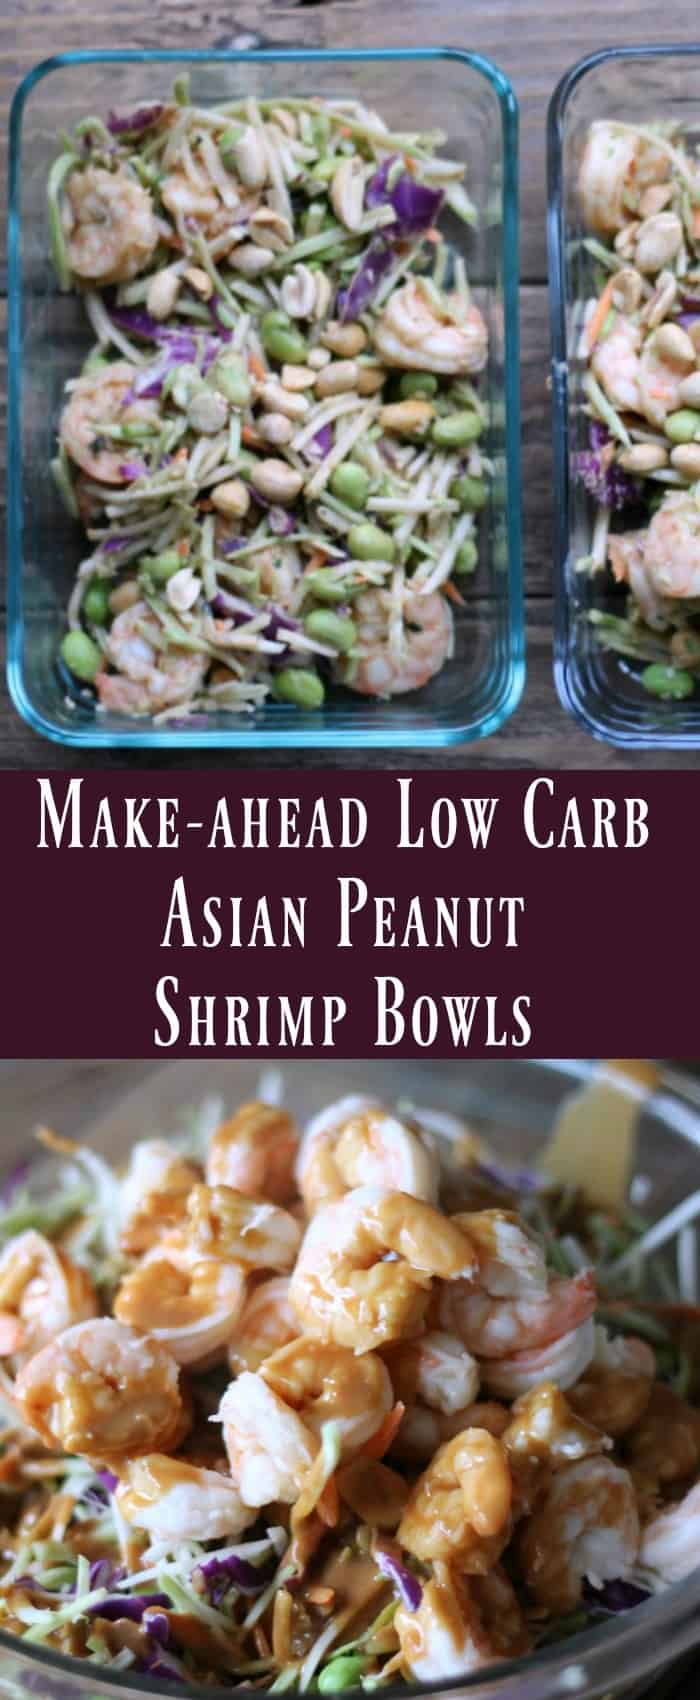 Make-ahead Low Carb Asian Peanut Shrimp Bowls